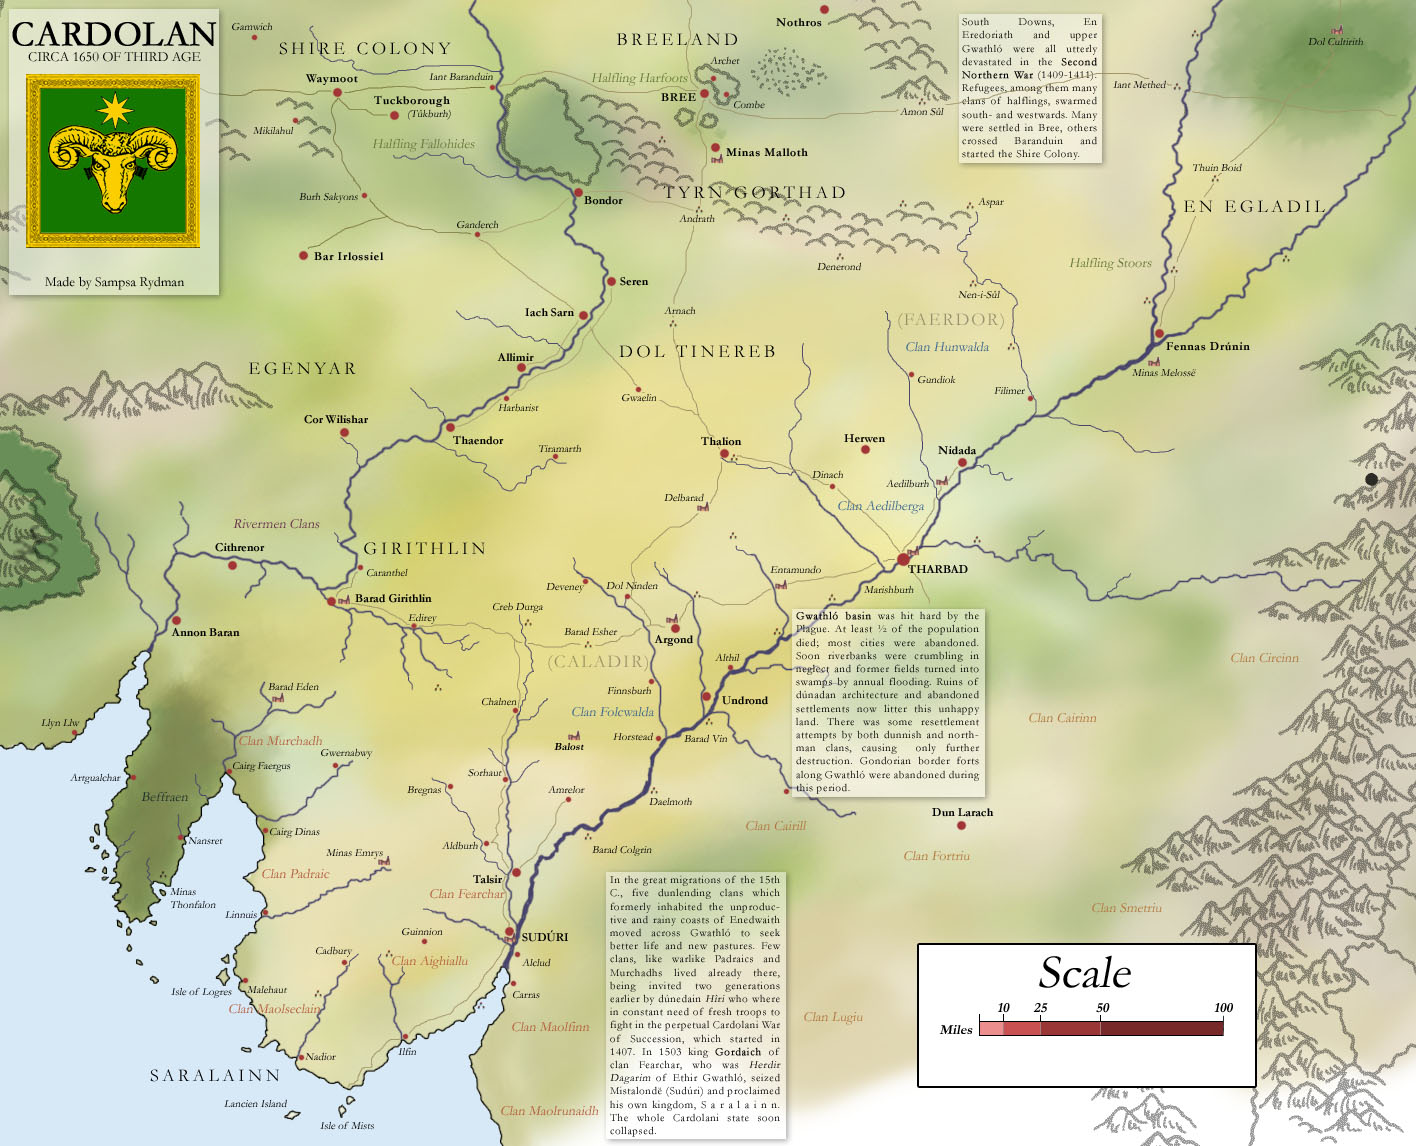 Lind firion Collection of Maps by Sampsa Rydman – Full Size Map of Middle Earth